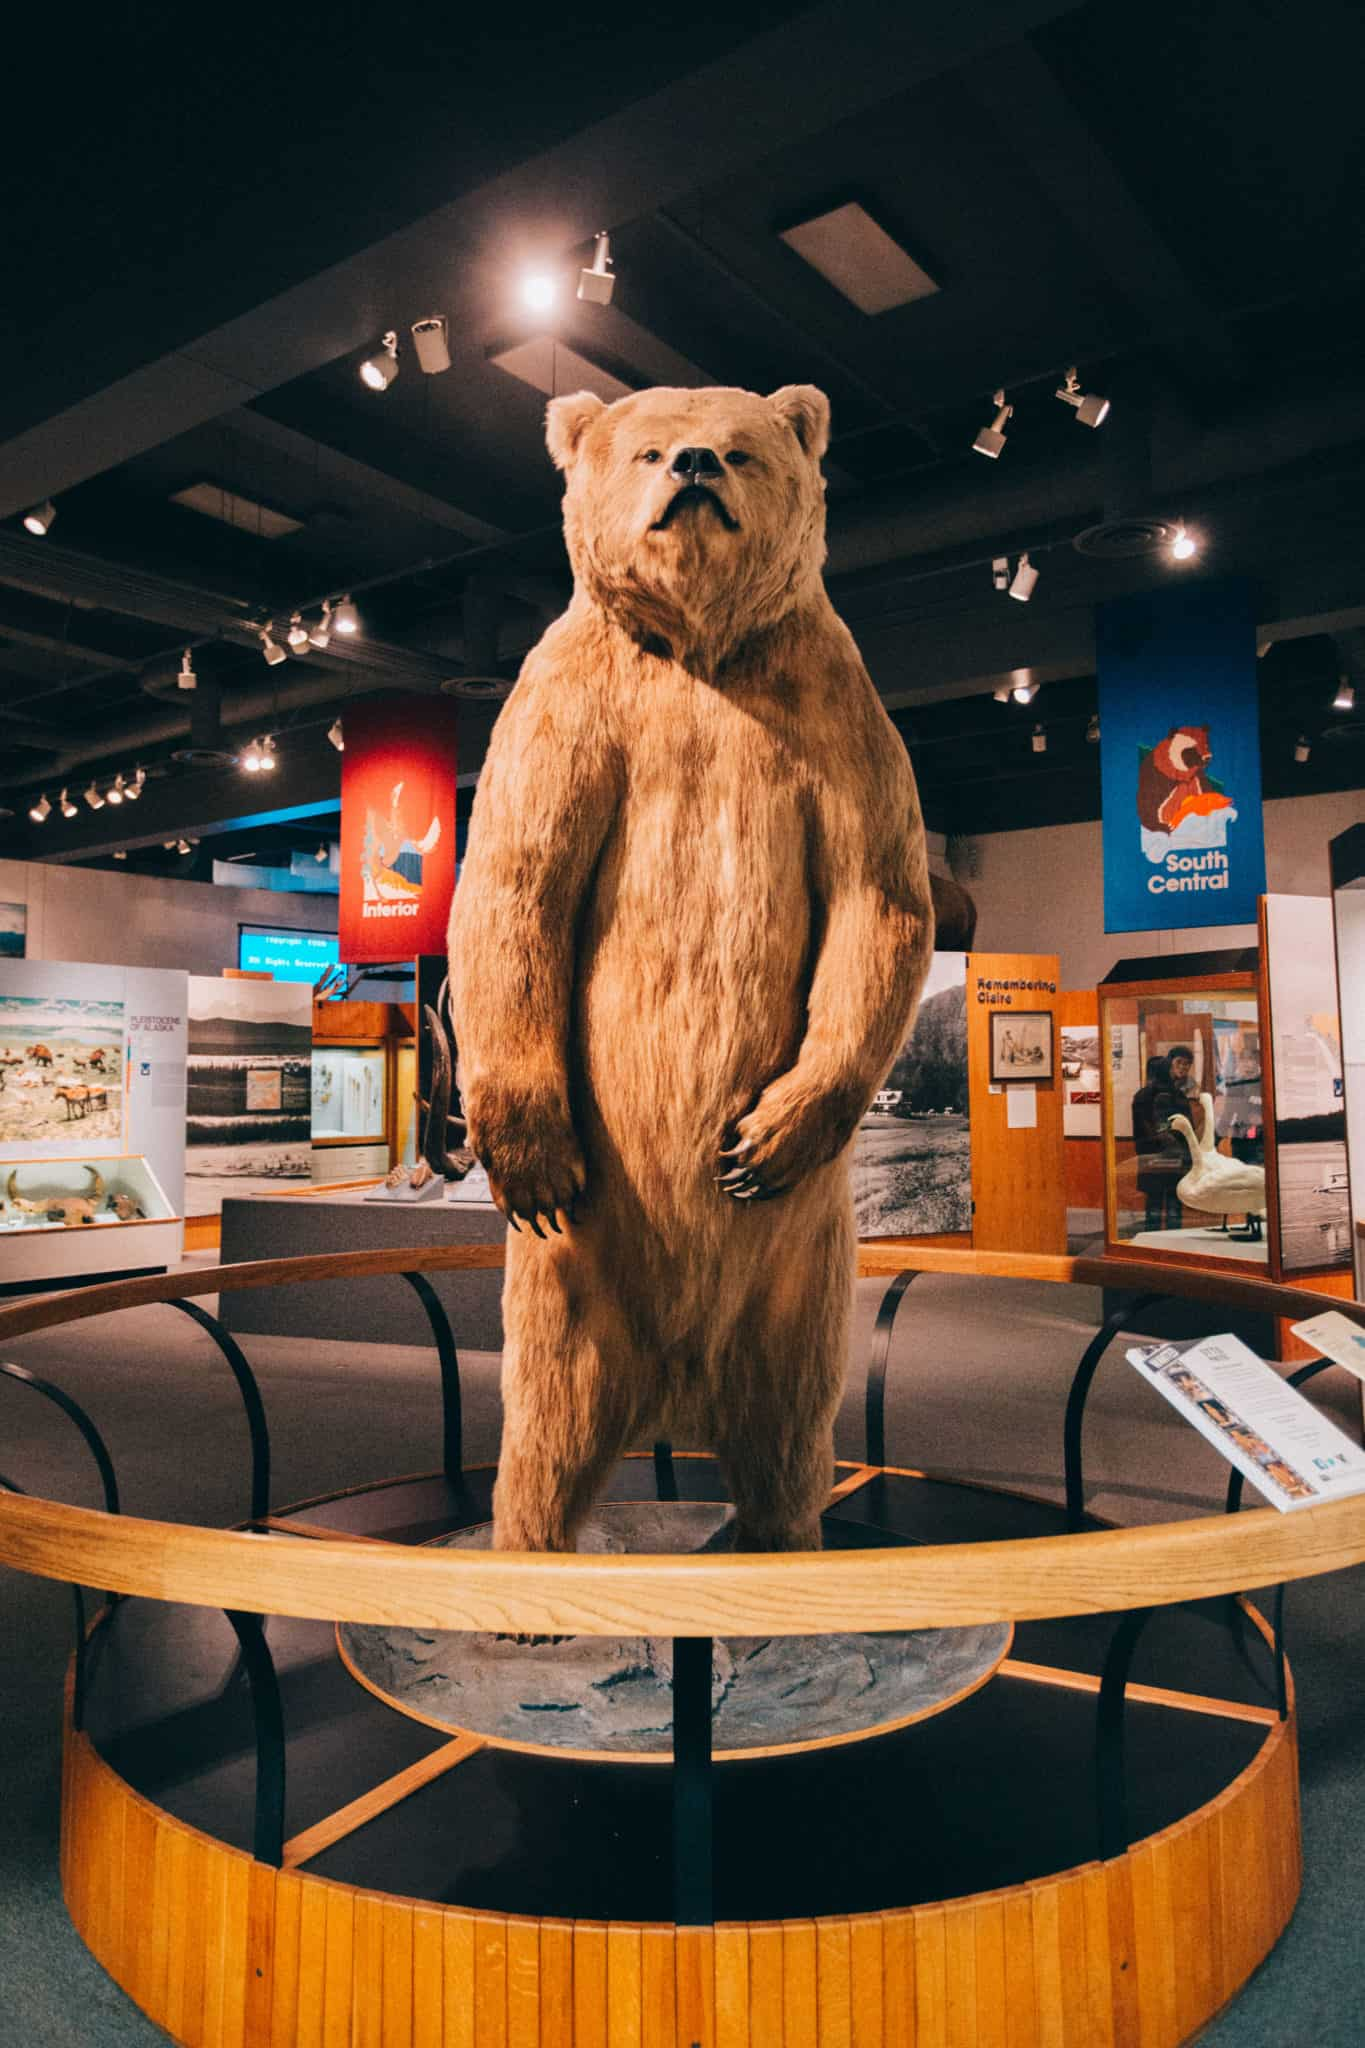 Things To Do In Fairbanks - Museum of The North